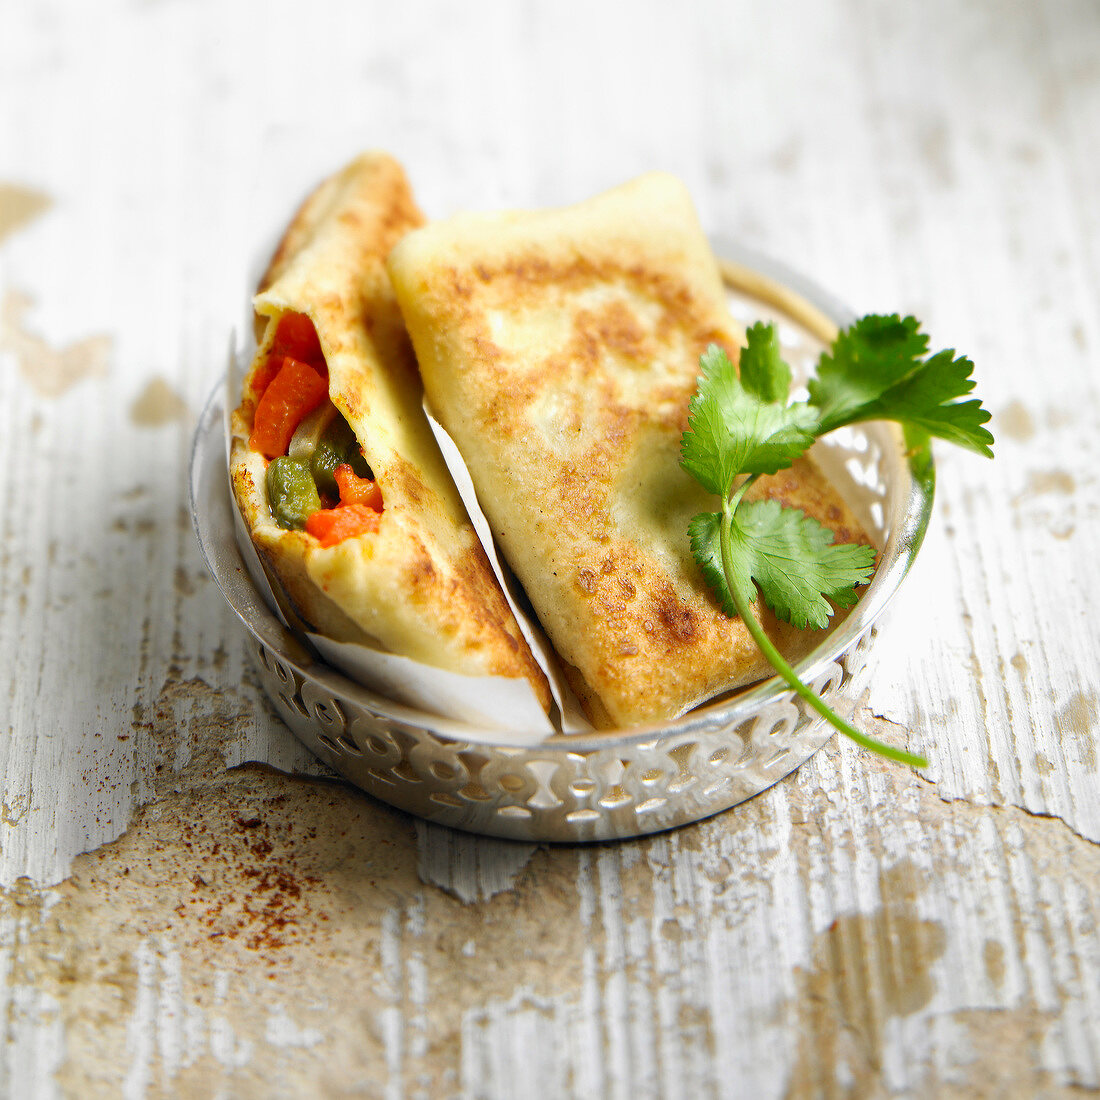 Green and red pepper turnovers